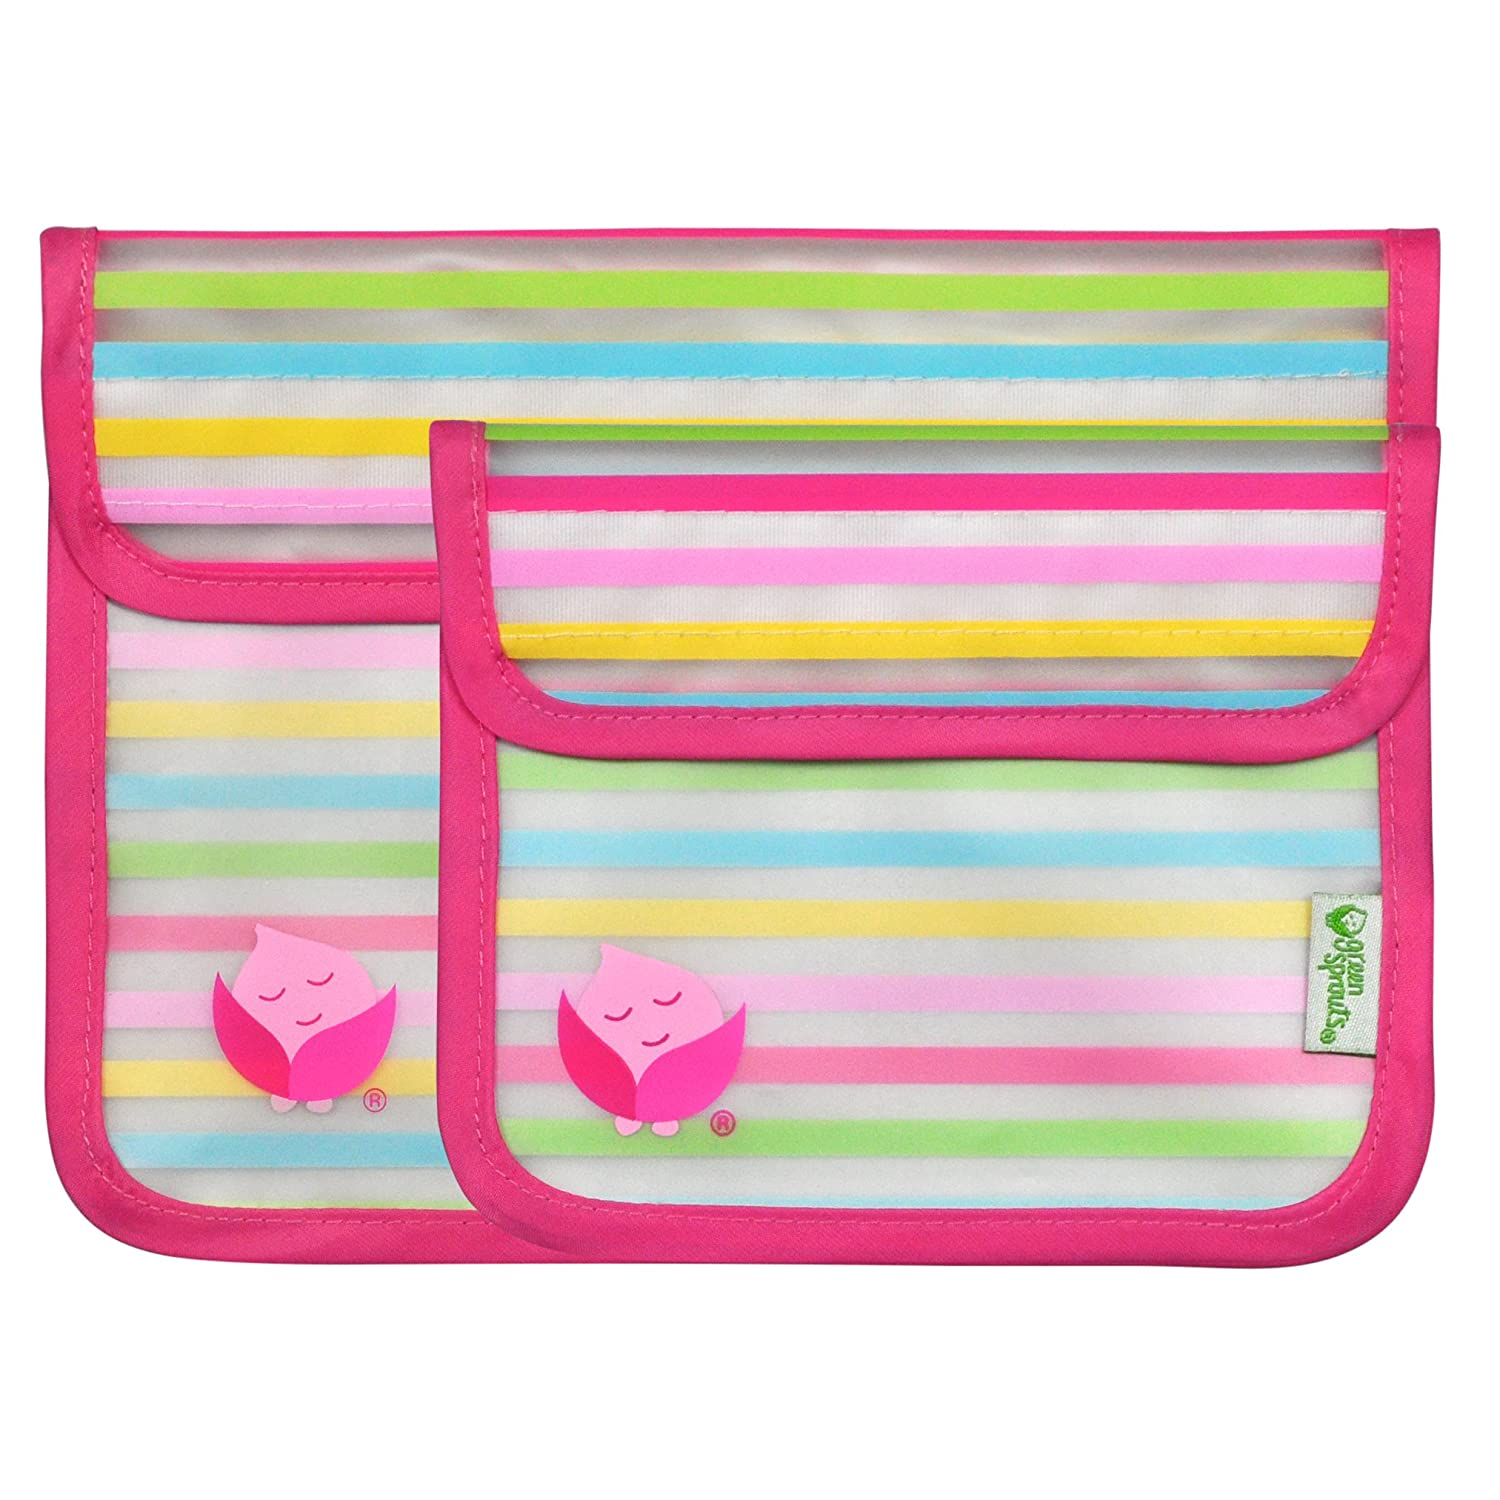 green sprouts 2 Piece Reusable Snack Bags, Pink i play. 165370-250-00